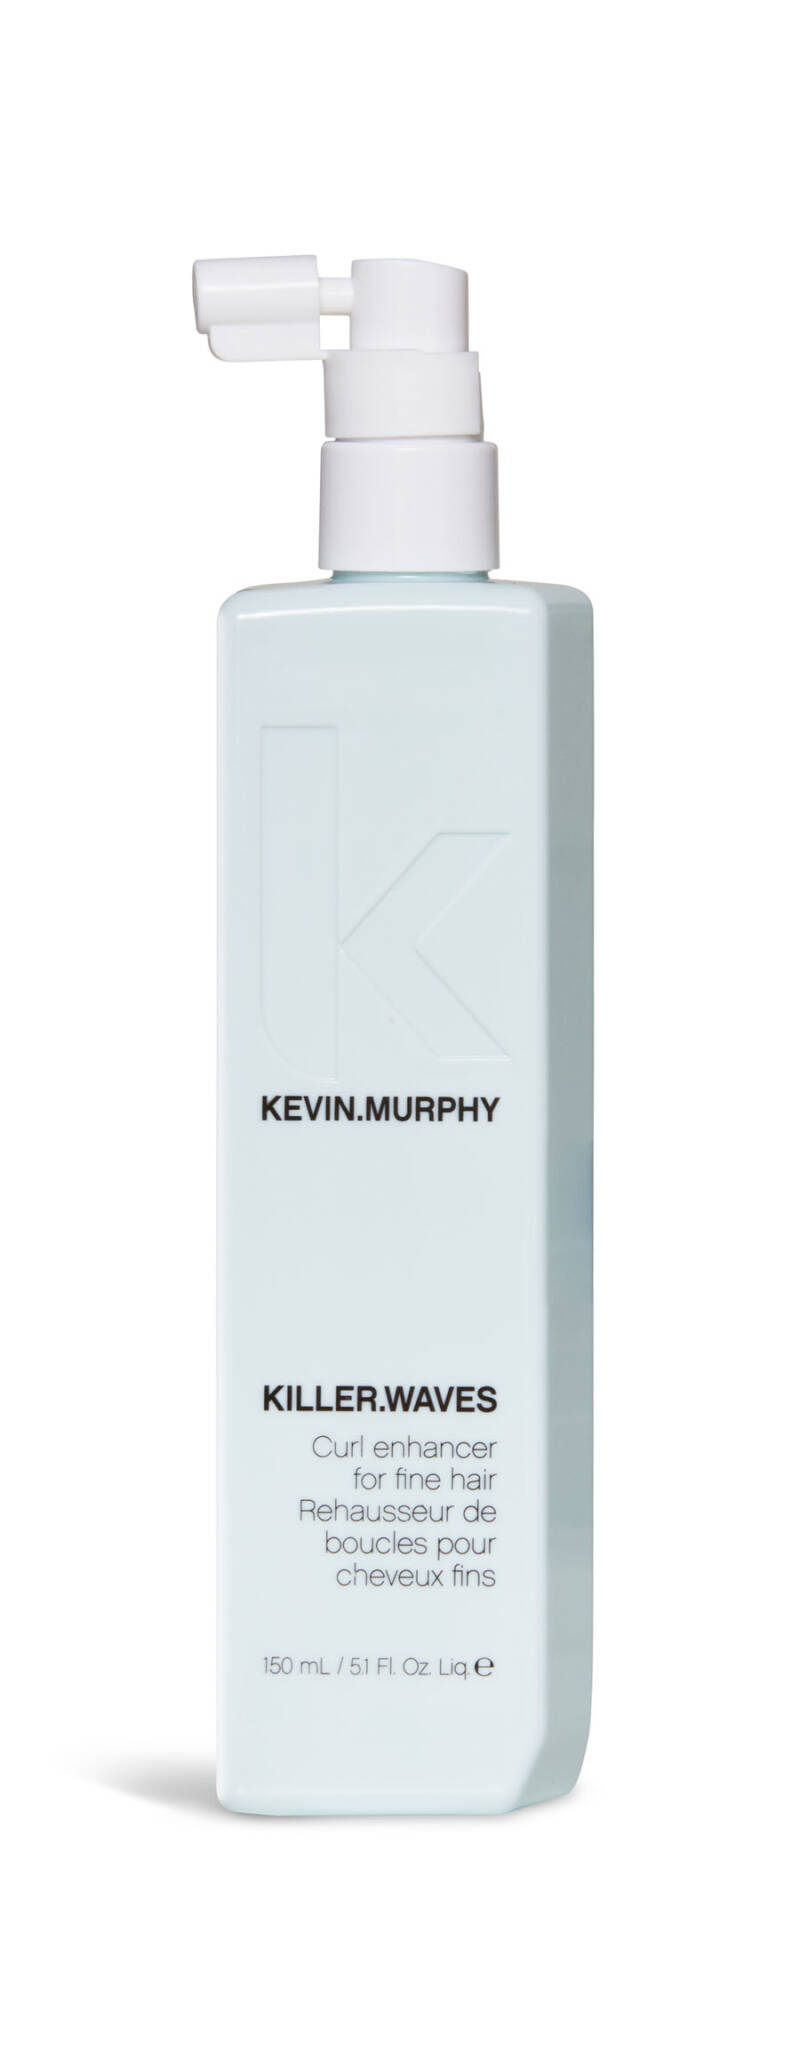 KILLER.WAVES 150 ML